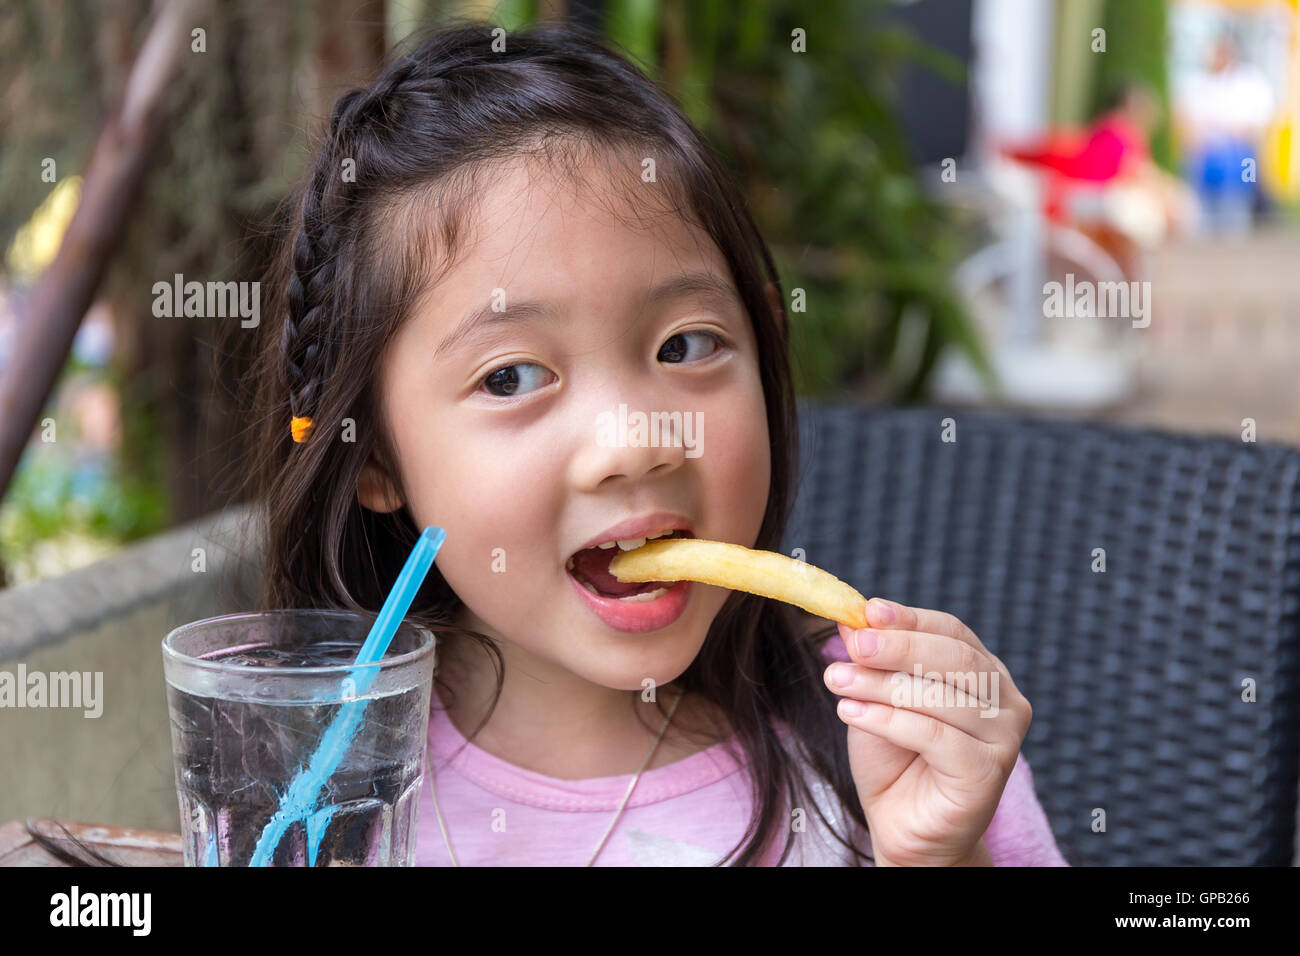 Child eating French fries and water at restaurant. - Stock Image